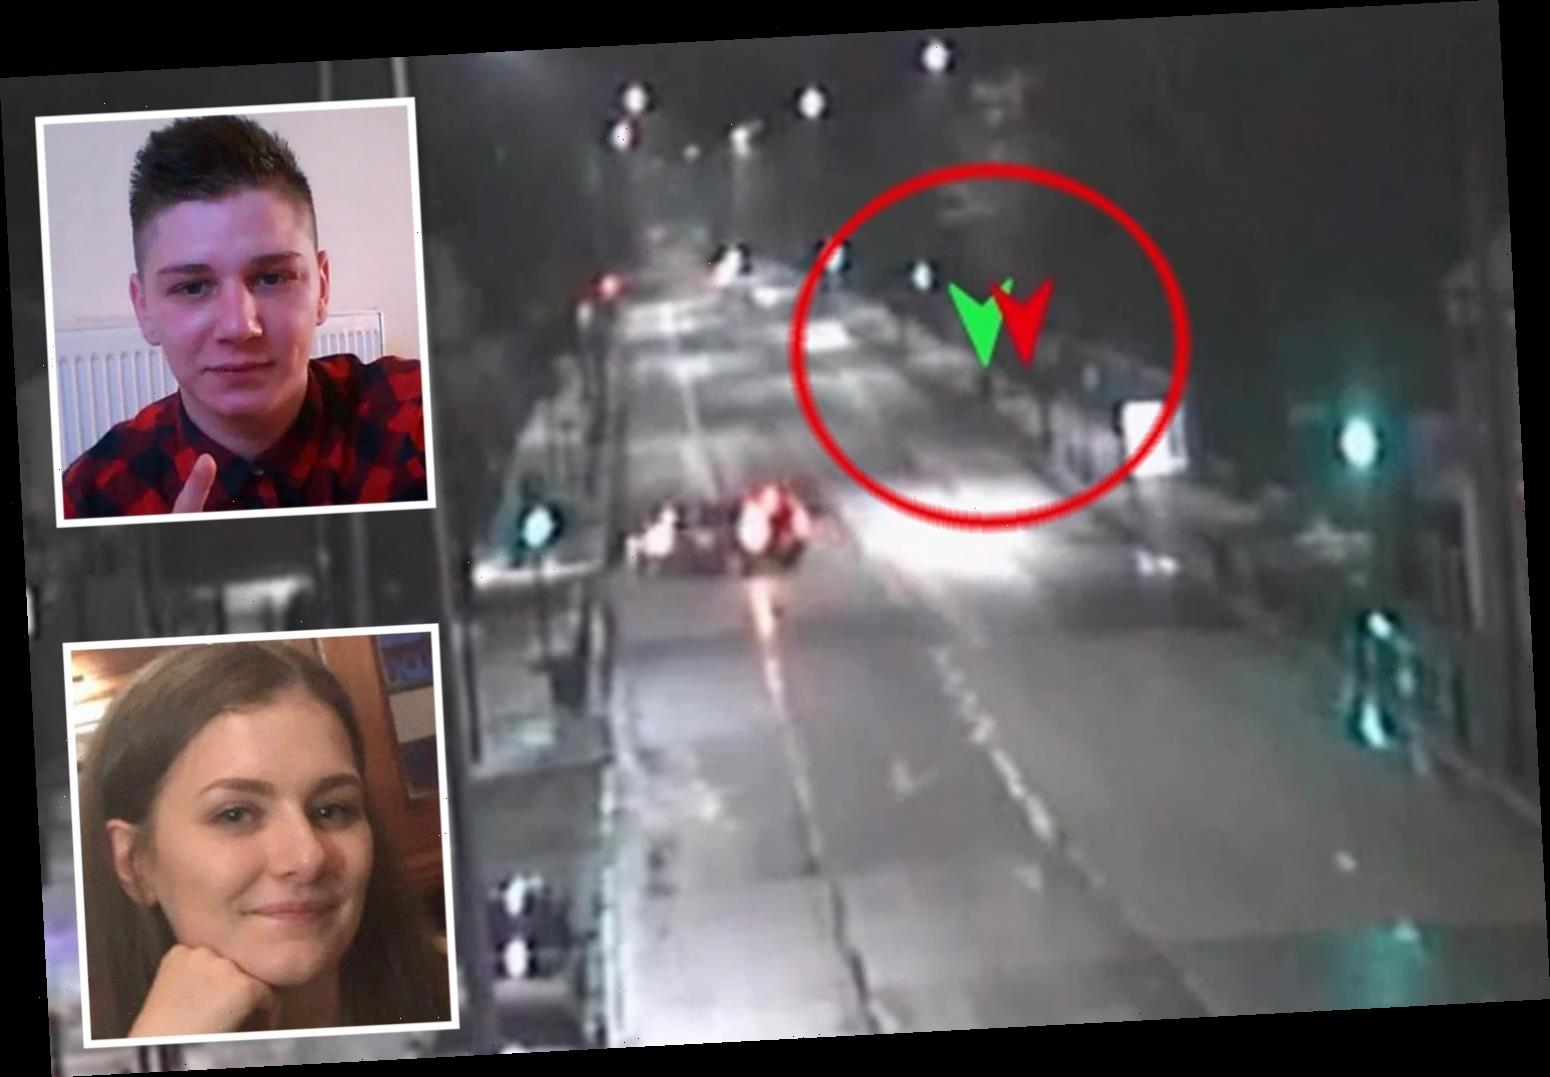 CCTV shows Libby Squire's final moments as Pawel Relowicz 'stalks' uni student, 21, before 'raping and murdering her'